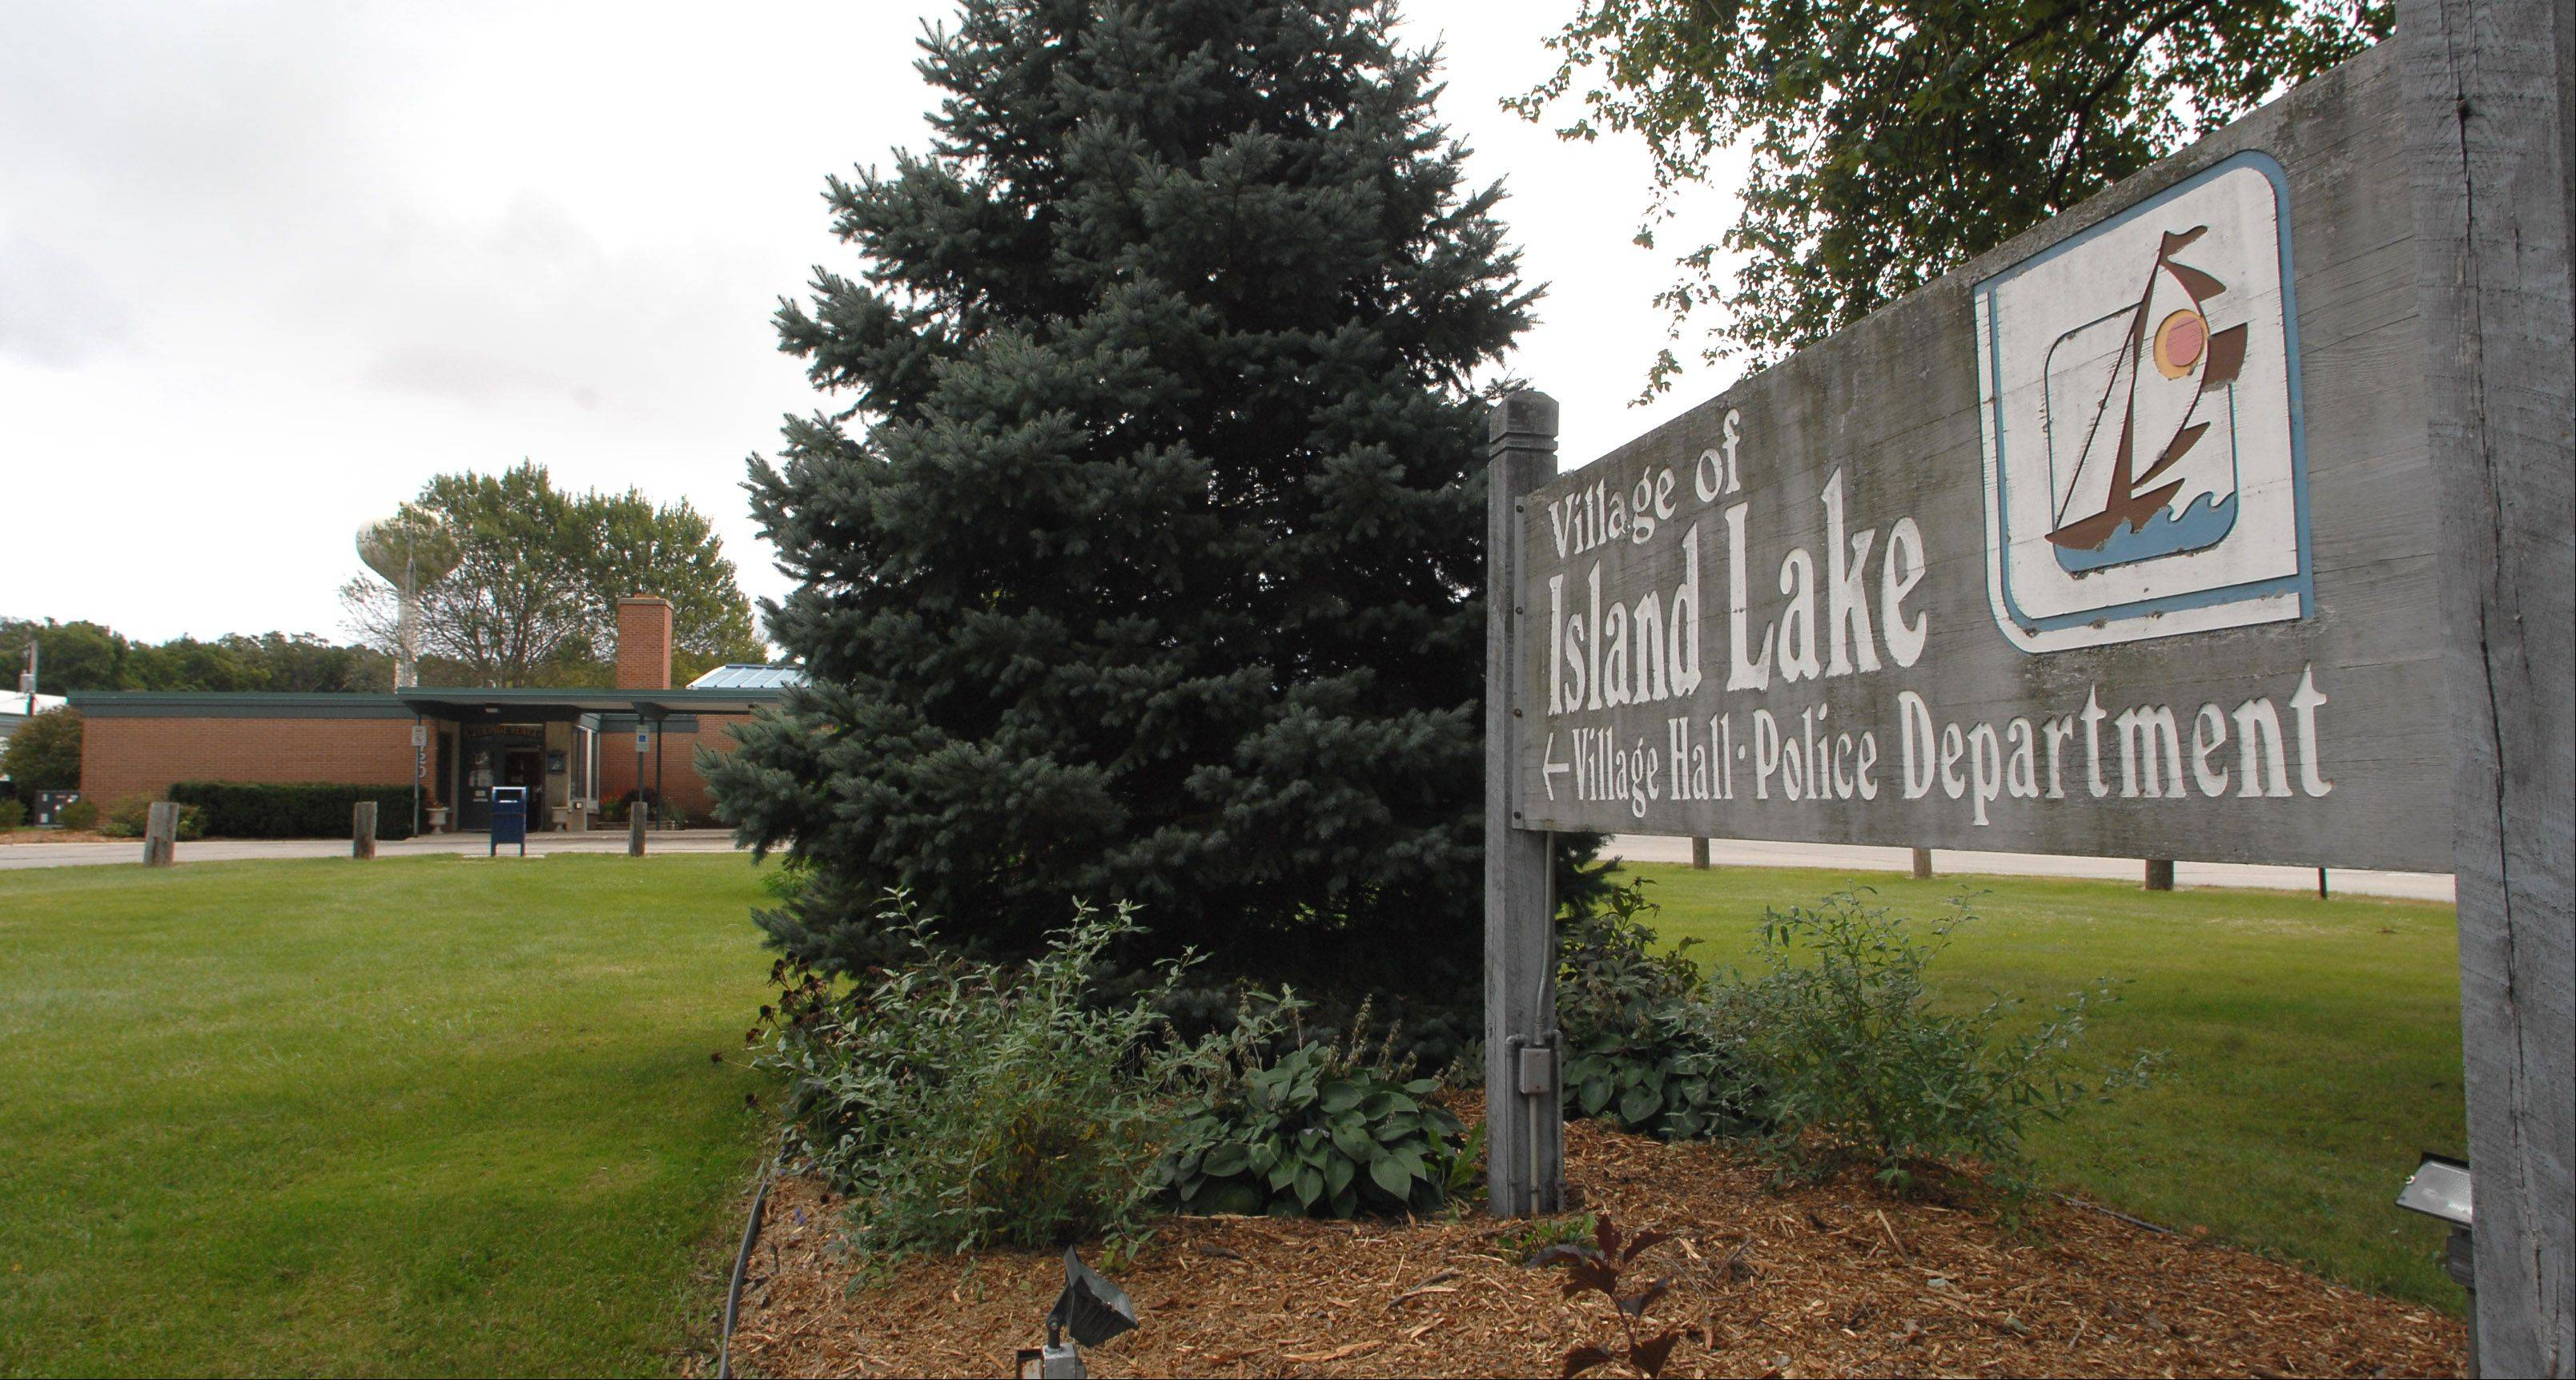 Two former Island Lake police officers could get their jobs back Thursday.